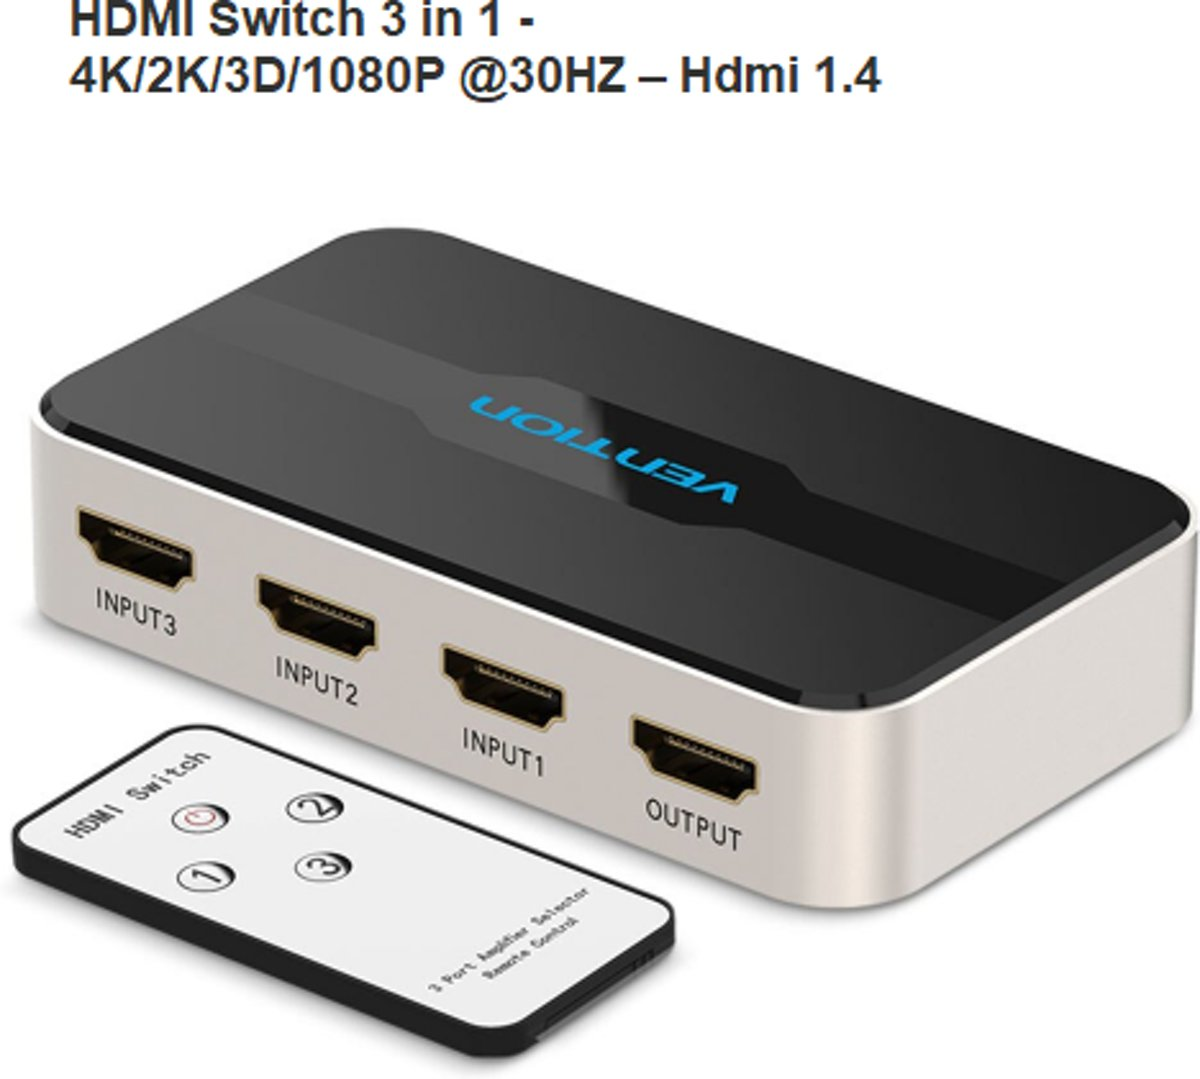 VT Series - HDMI Switch 3 in 1 - 4K/2K/3D/1080P @30HZ – Hdmi 1.4 / HDCP 1.2 met afstandsbediening & Audio/Video Sync  voor o.a voor XBOX 360 PS4/PS3 Smart android